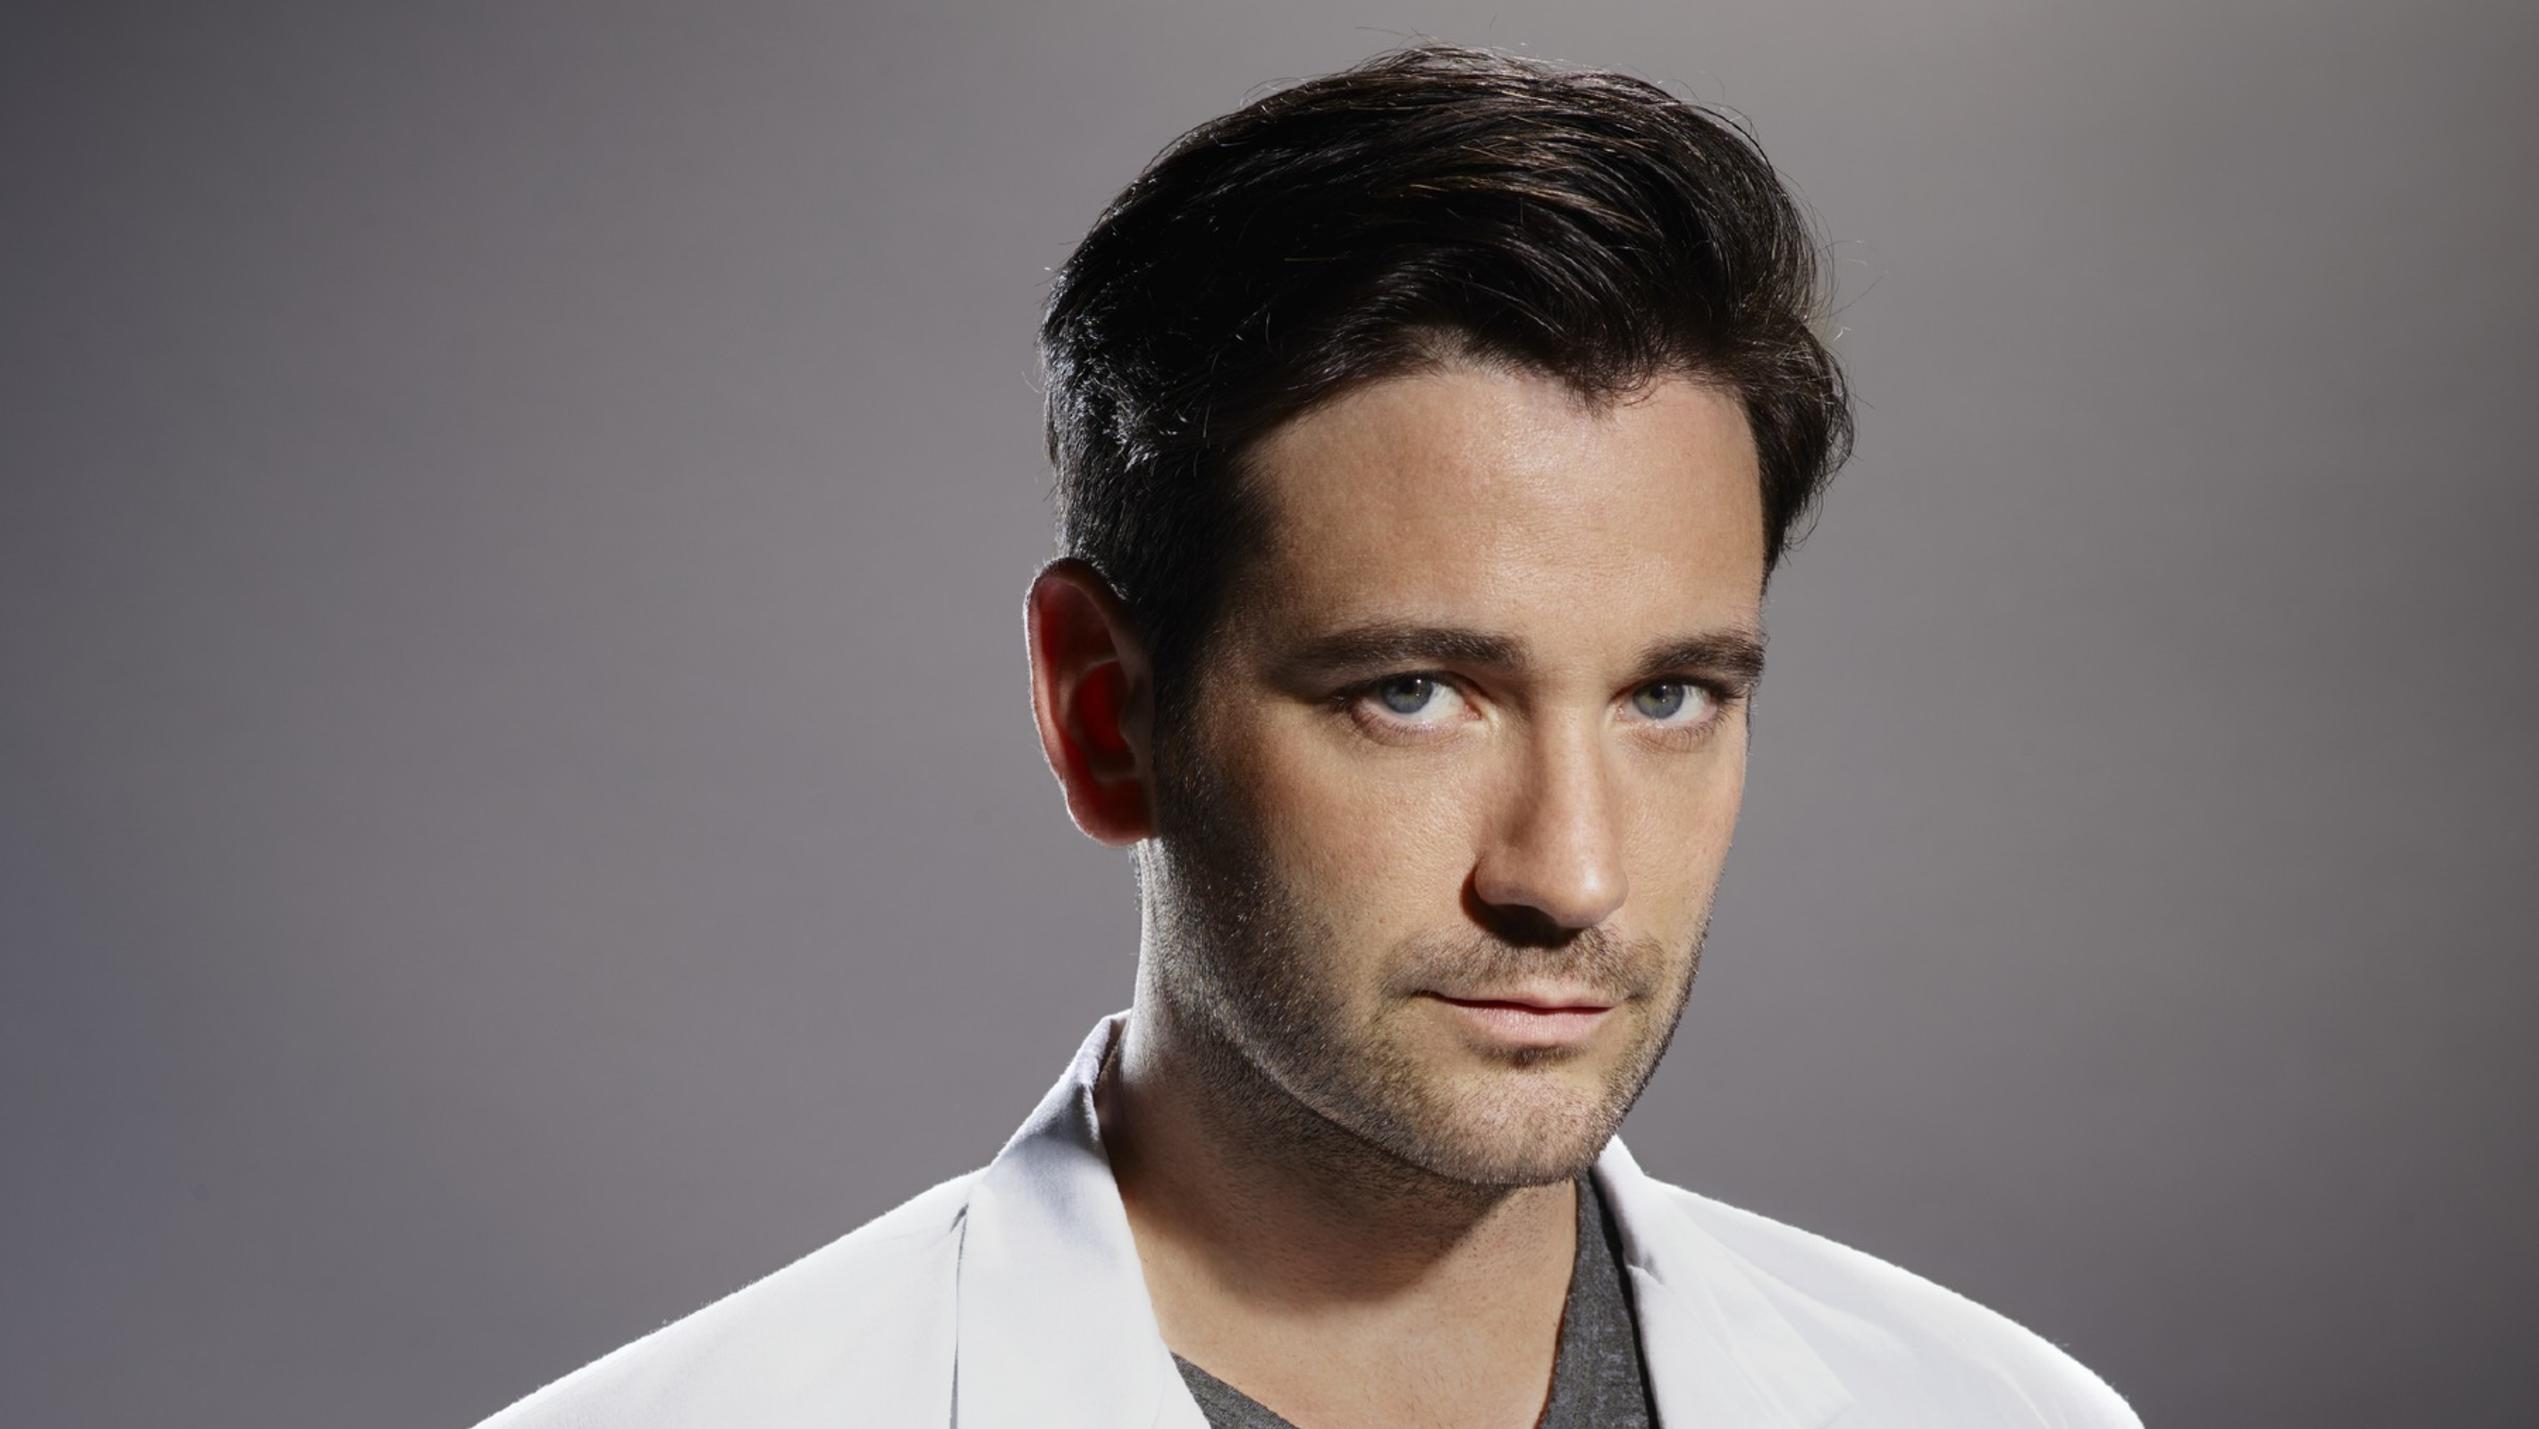 Connor Bradhaw (Colin Donnell)